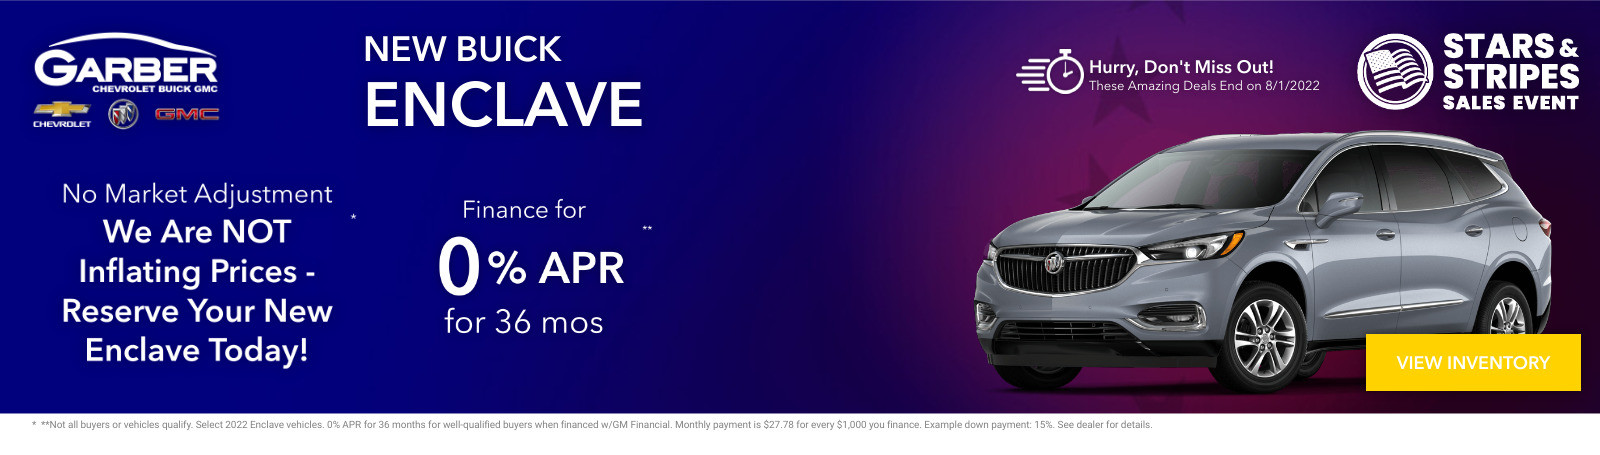 New Buick Enclave Current Deals and Offers in Green Cove Springs, FL